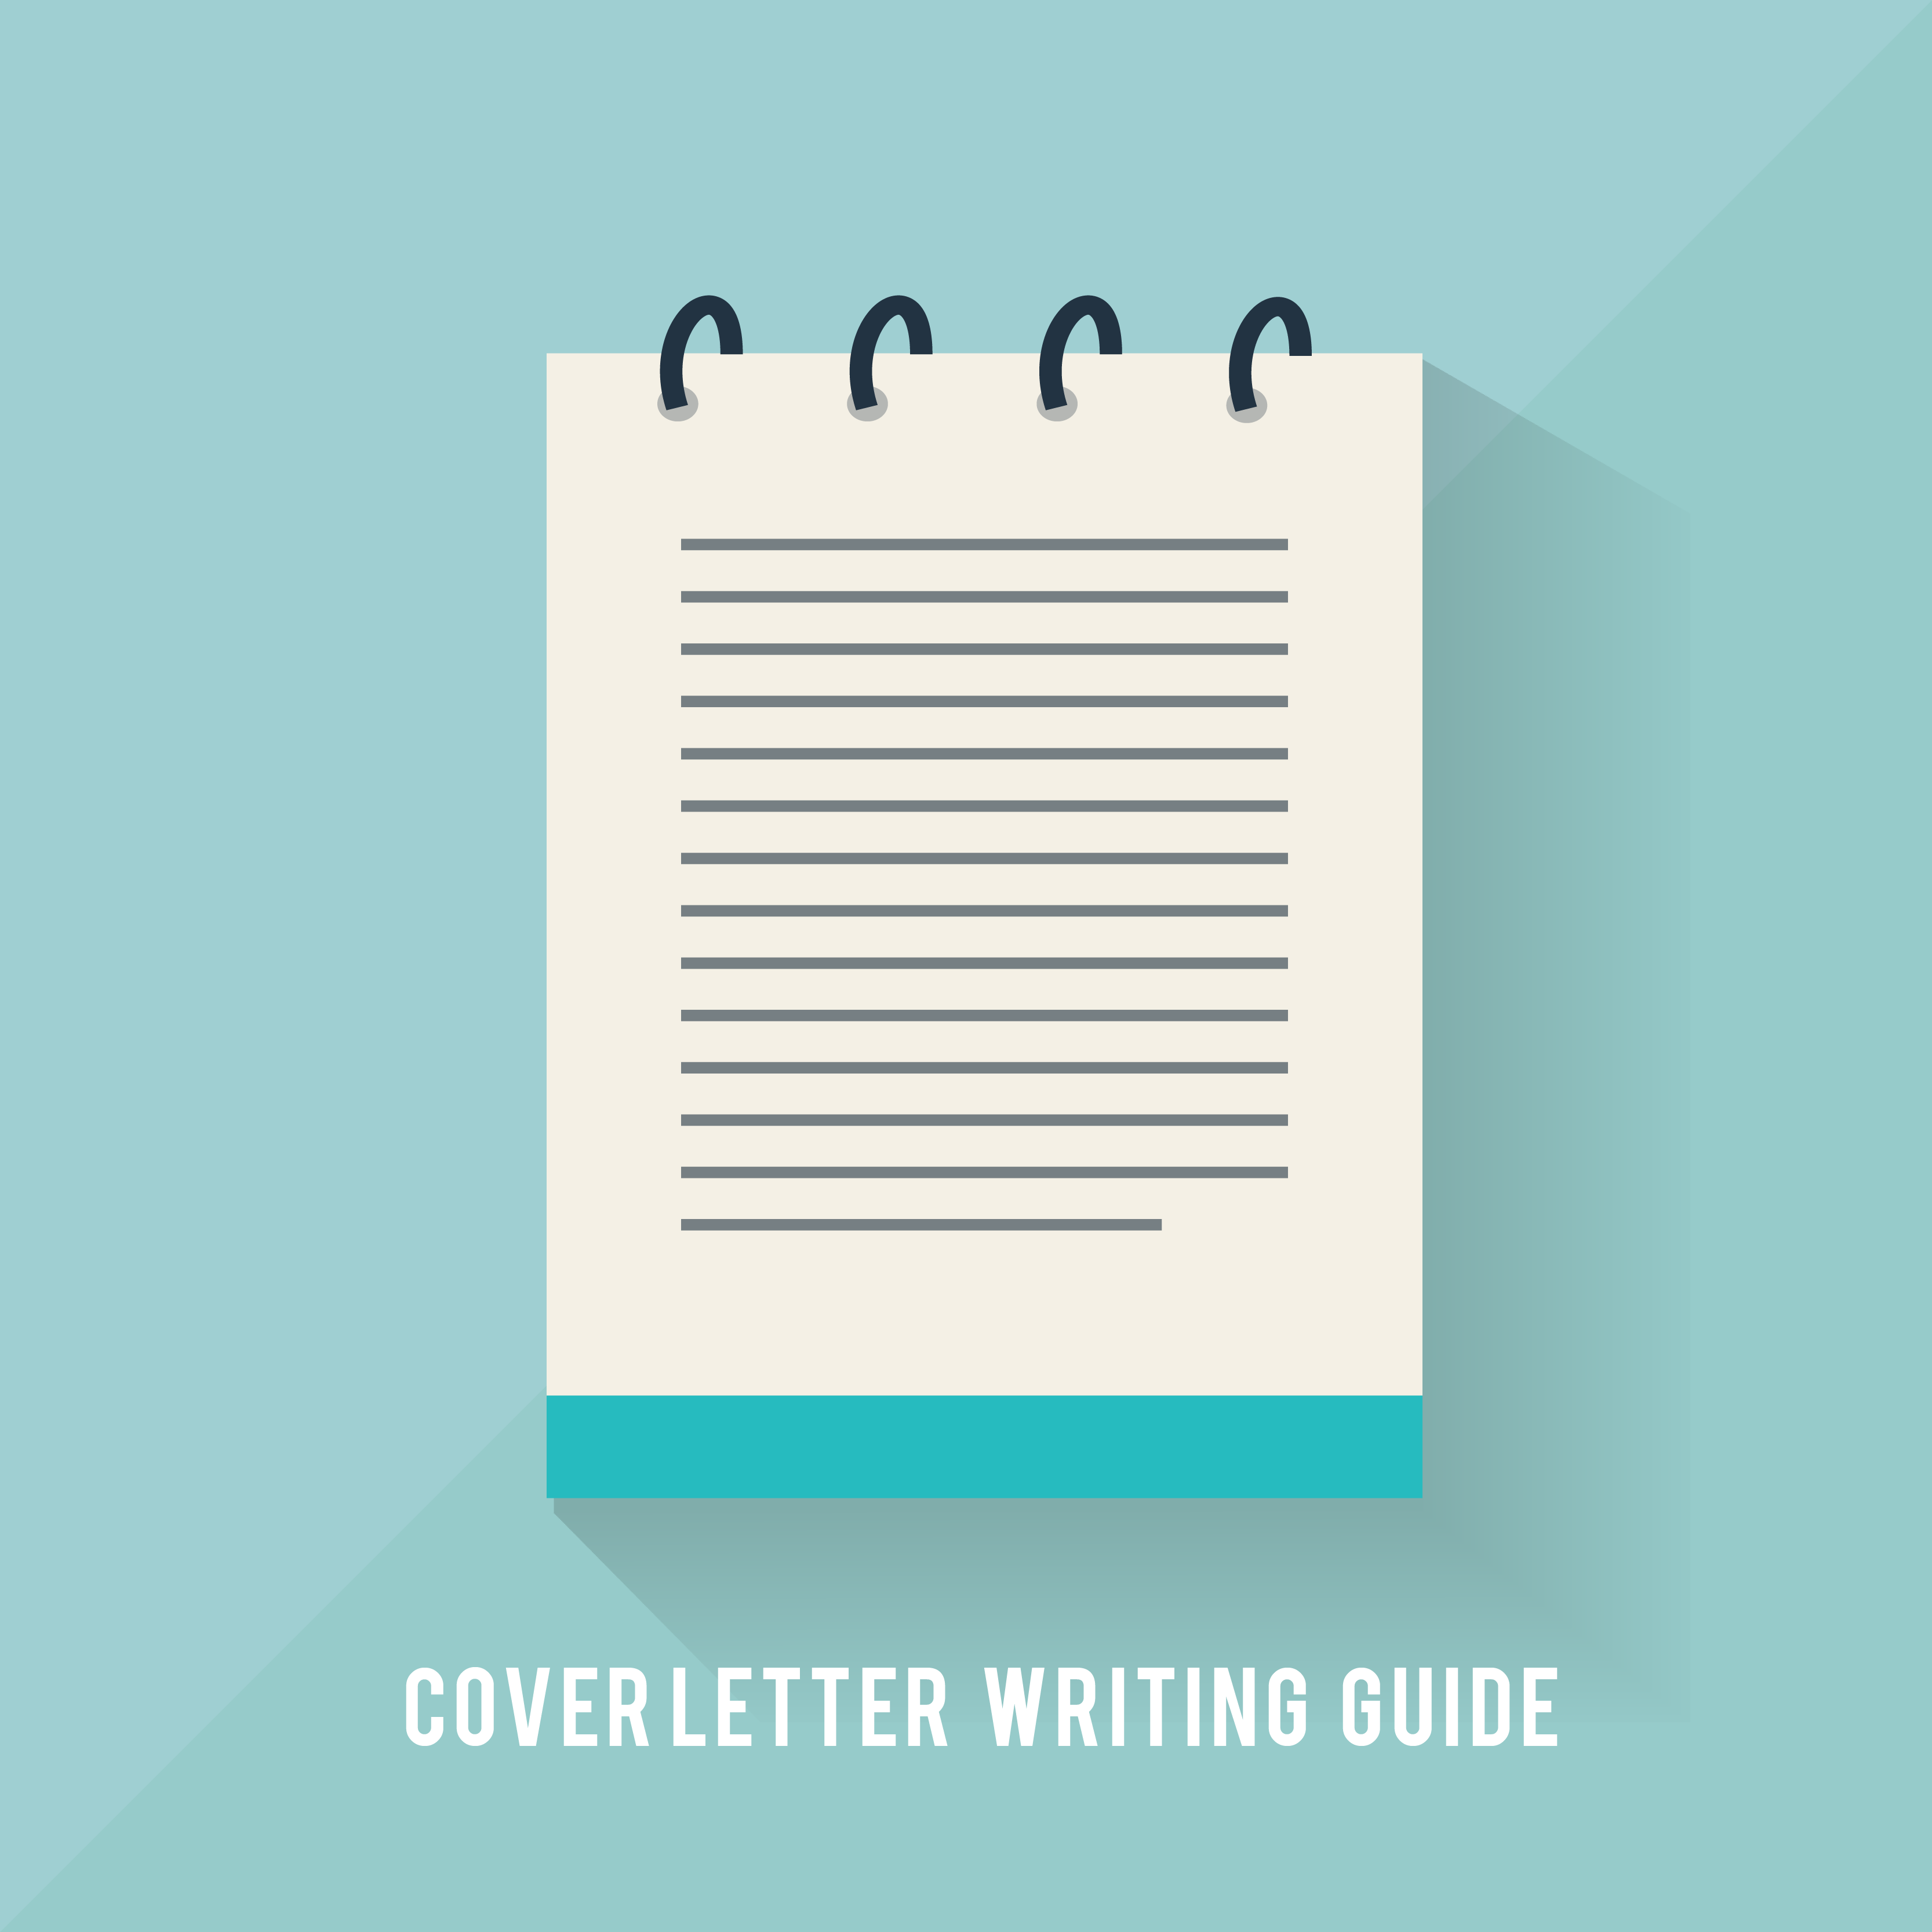 GUIDE TO WRITING TARGETED COVER LETTERS